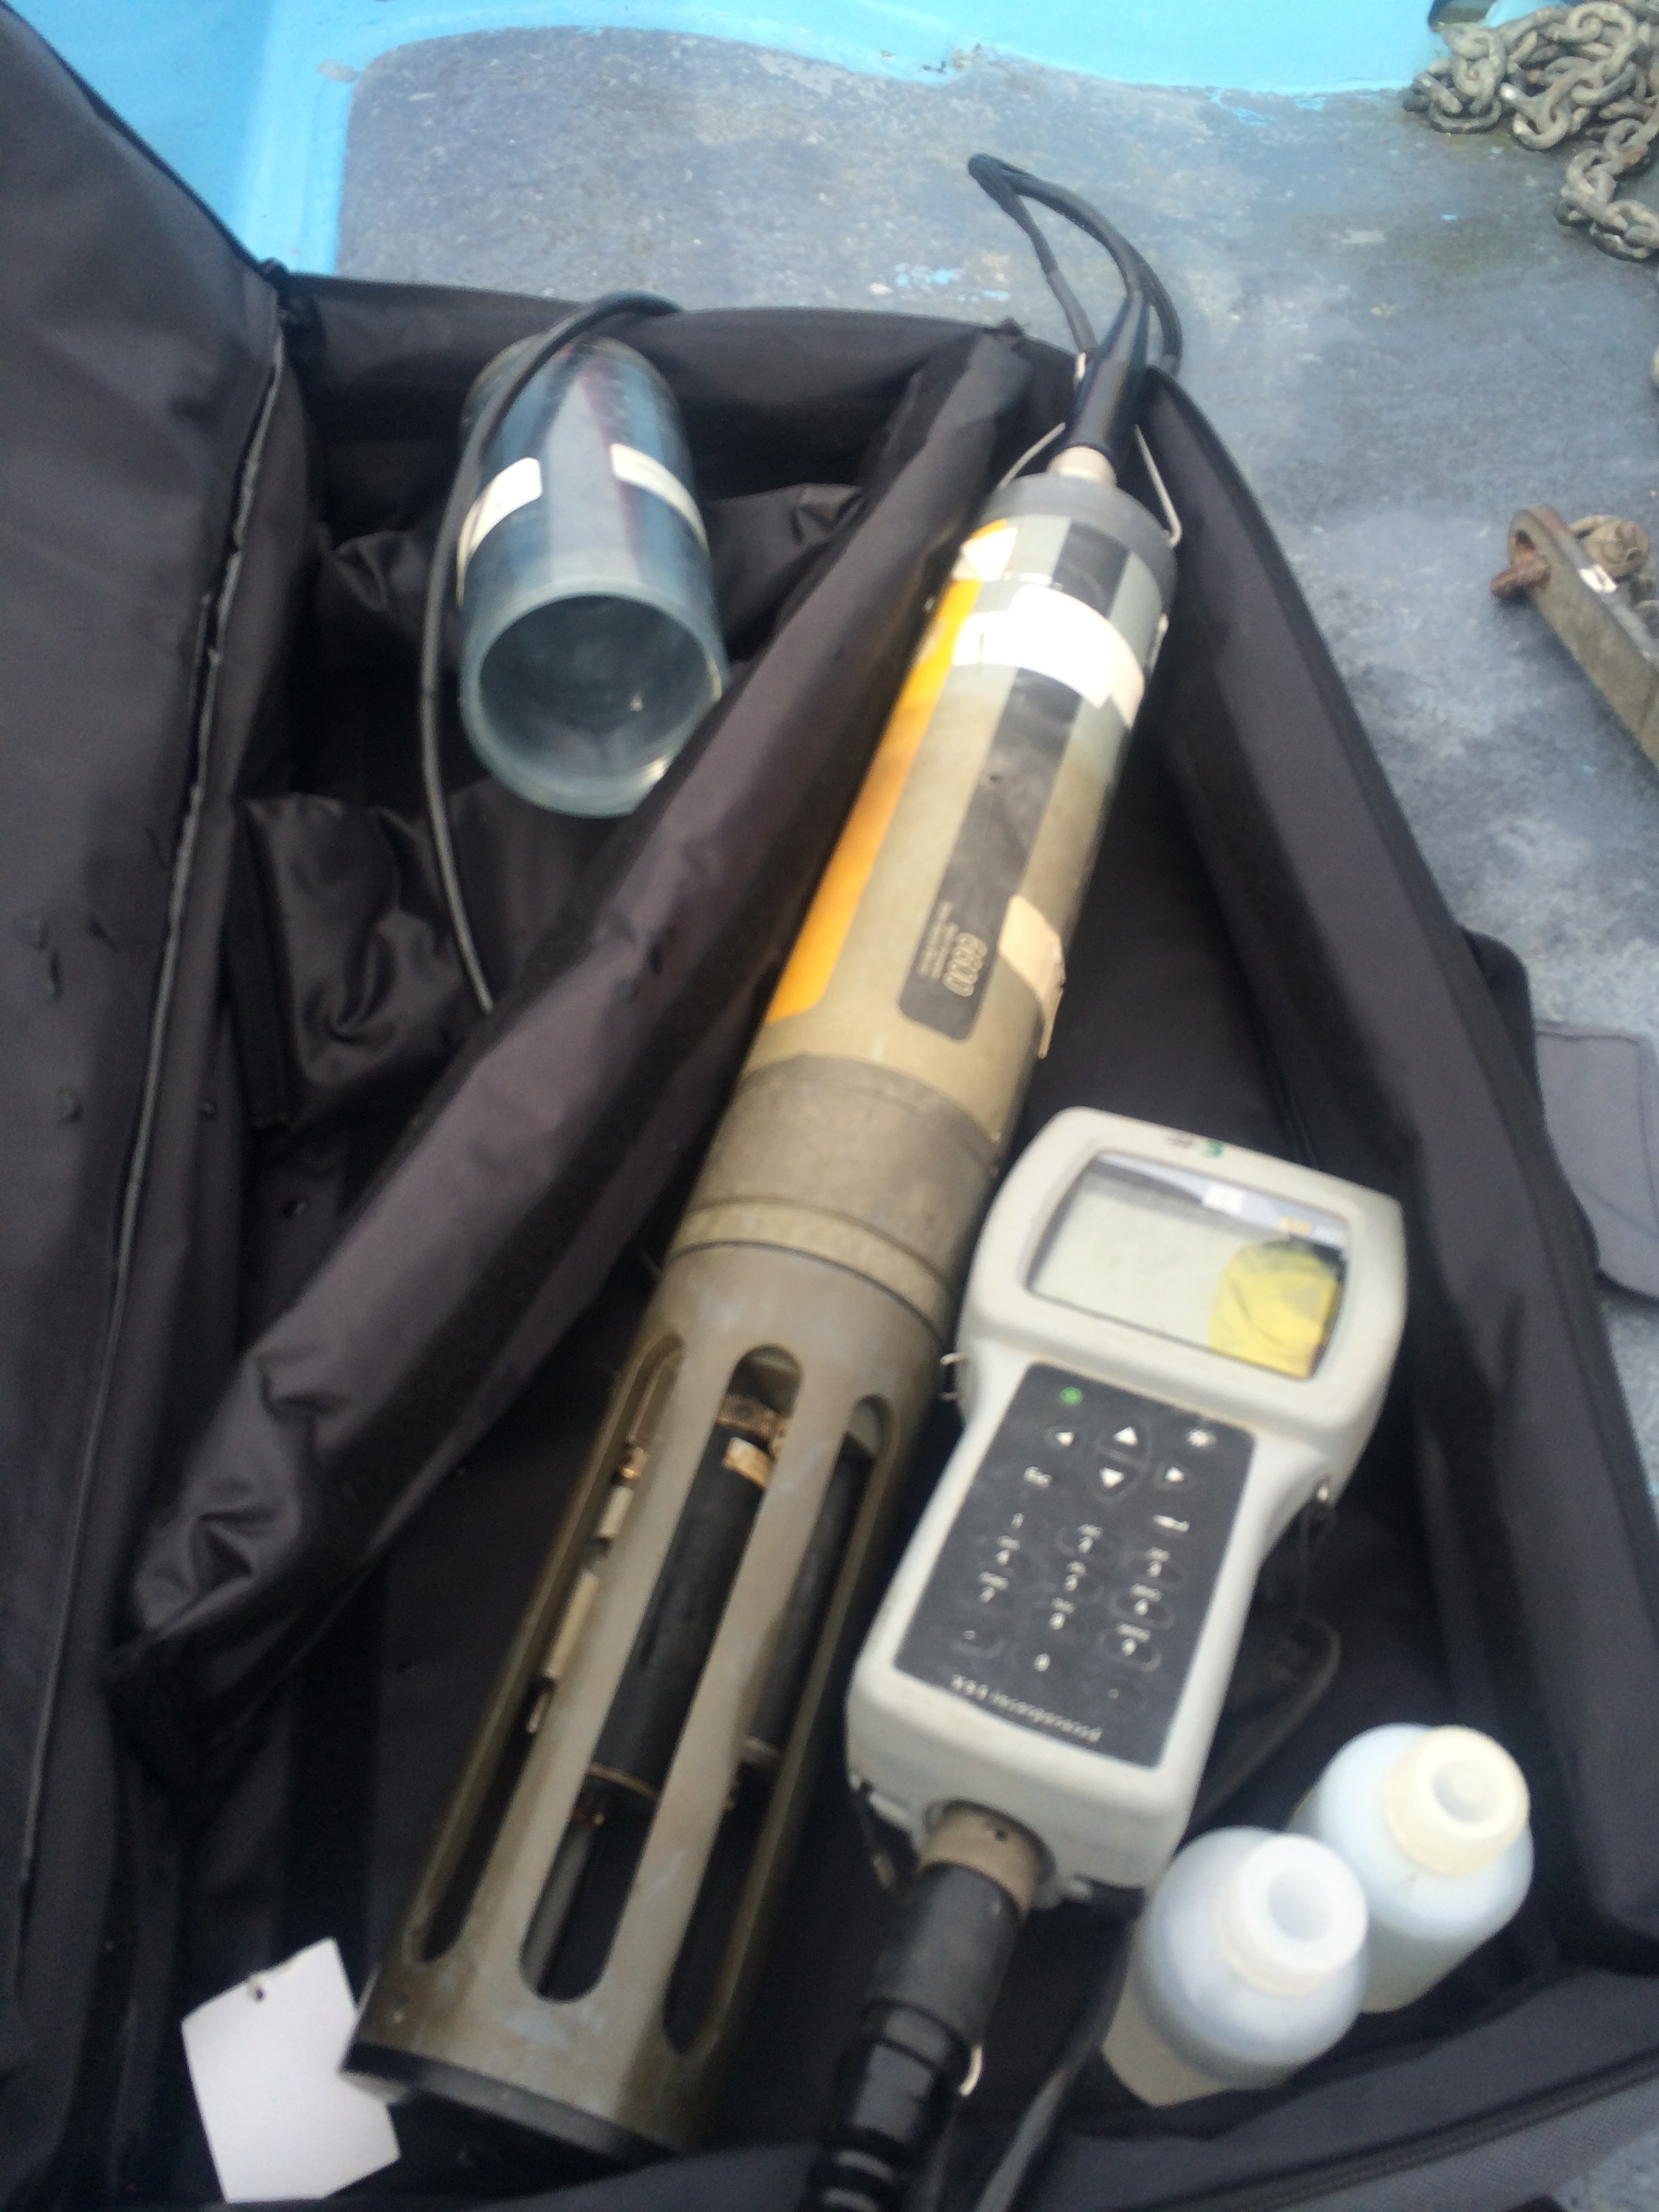 CTD measures salinity, temperature, pH among other oceanographic variables